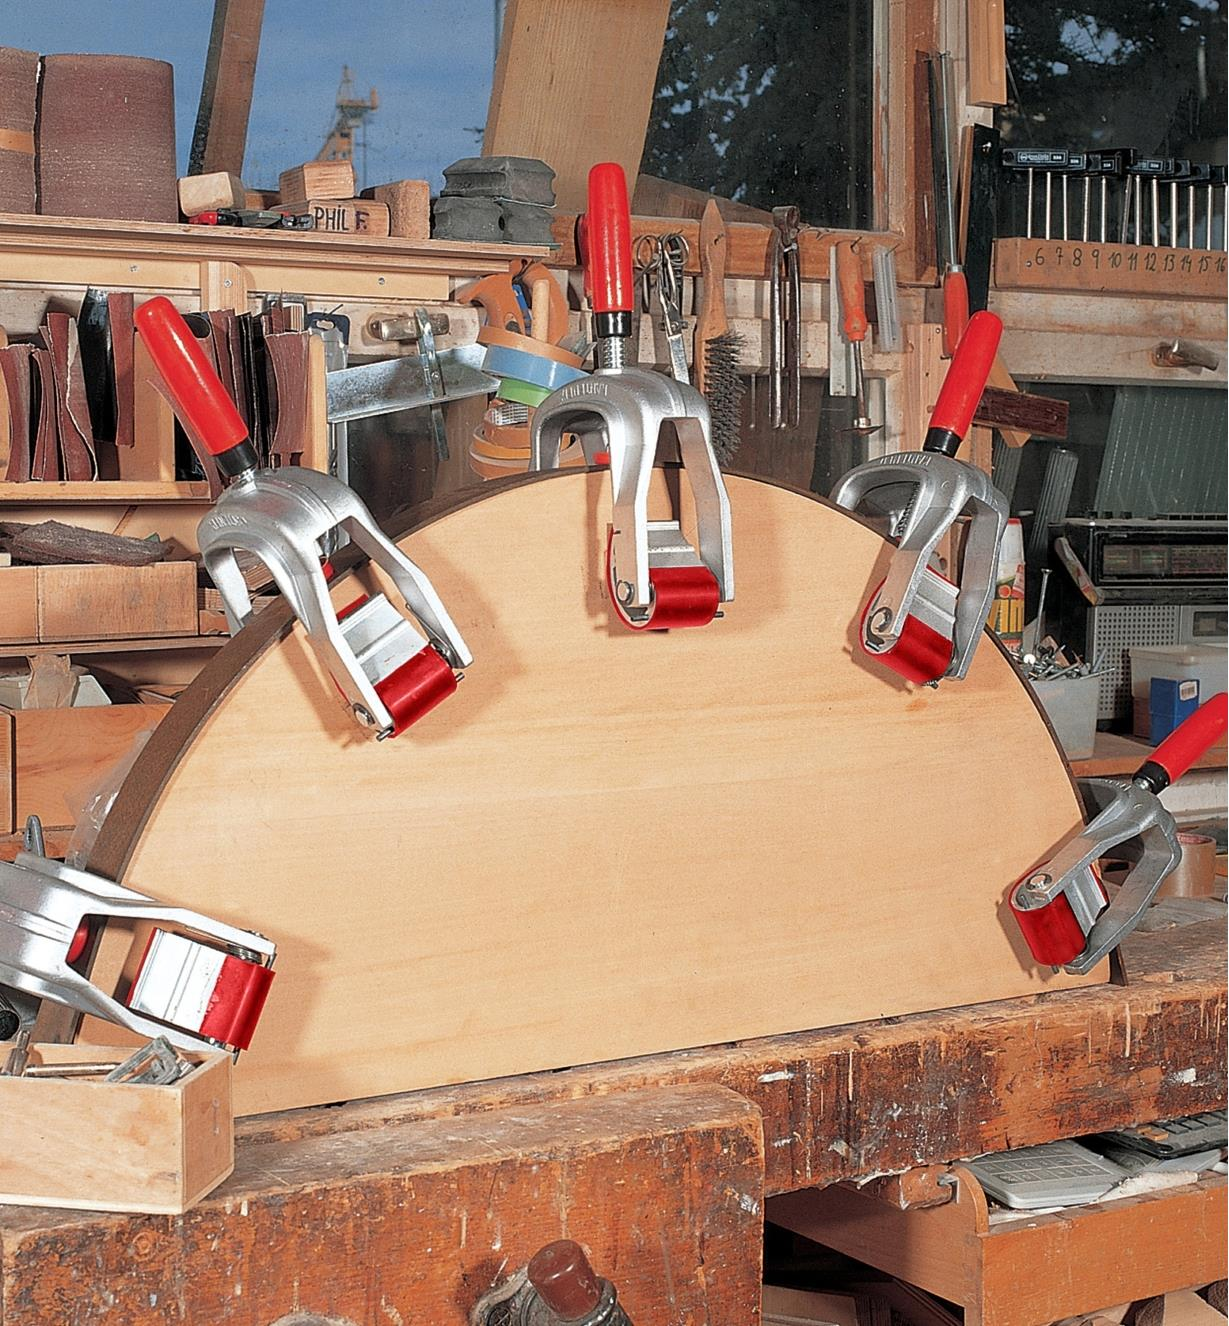 Five Bessey edge clamps being used to hold edging in place on a curved workpiece